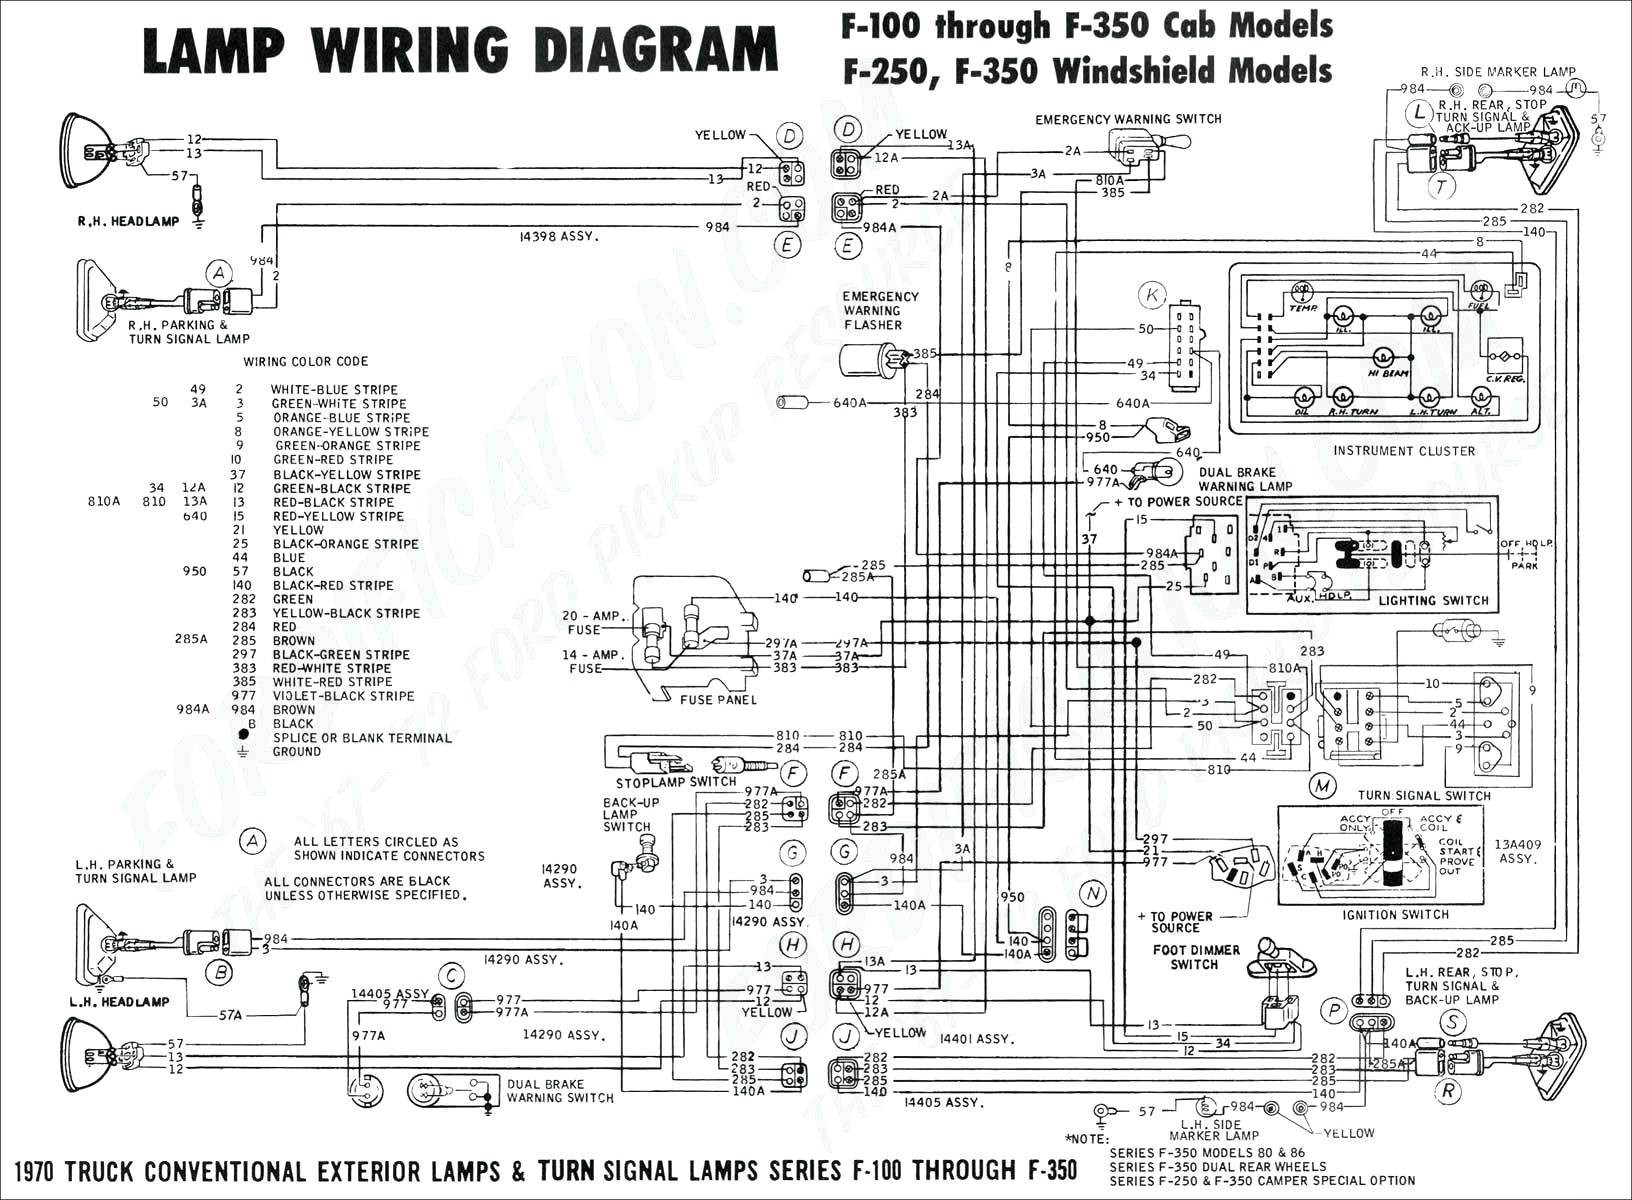 1999 ford Escort Engine Diagram 2001 F250 Engine Diagram Experts Wiring Diagram •